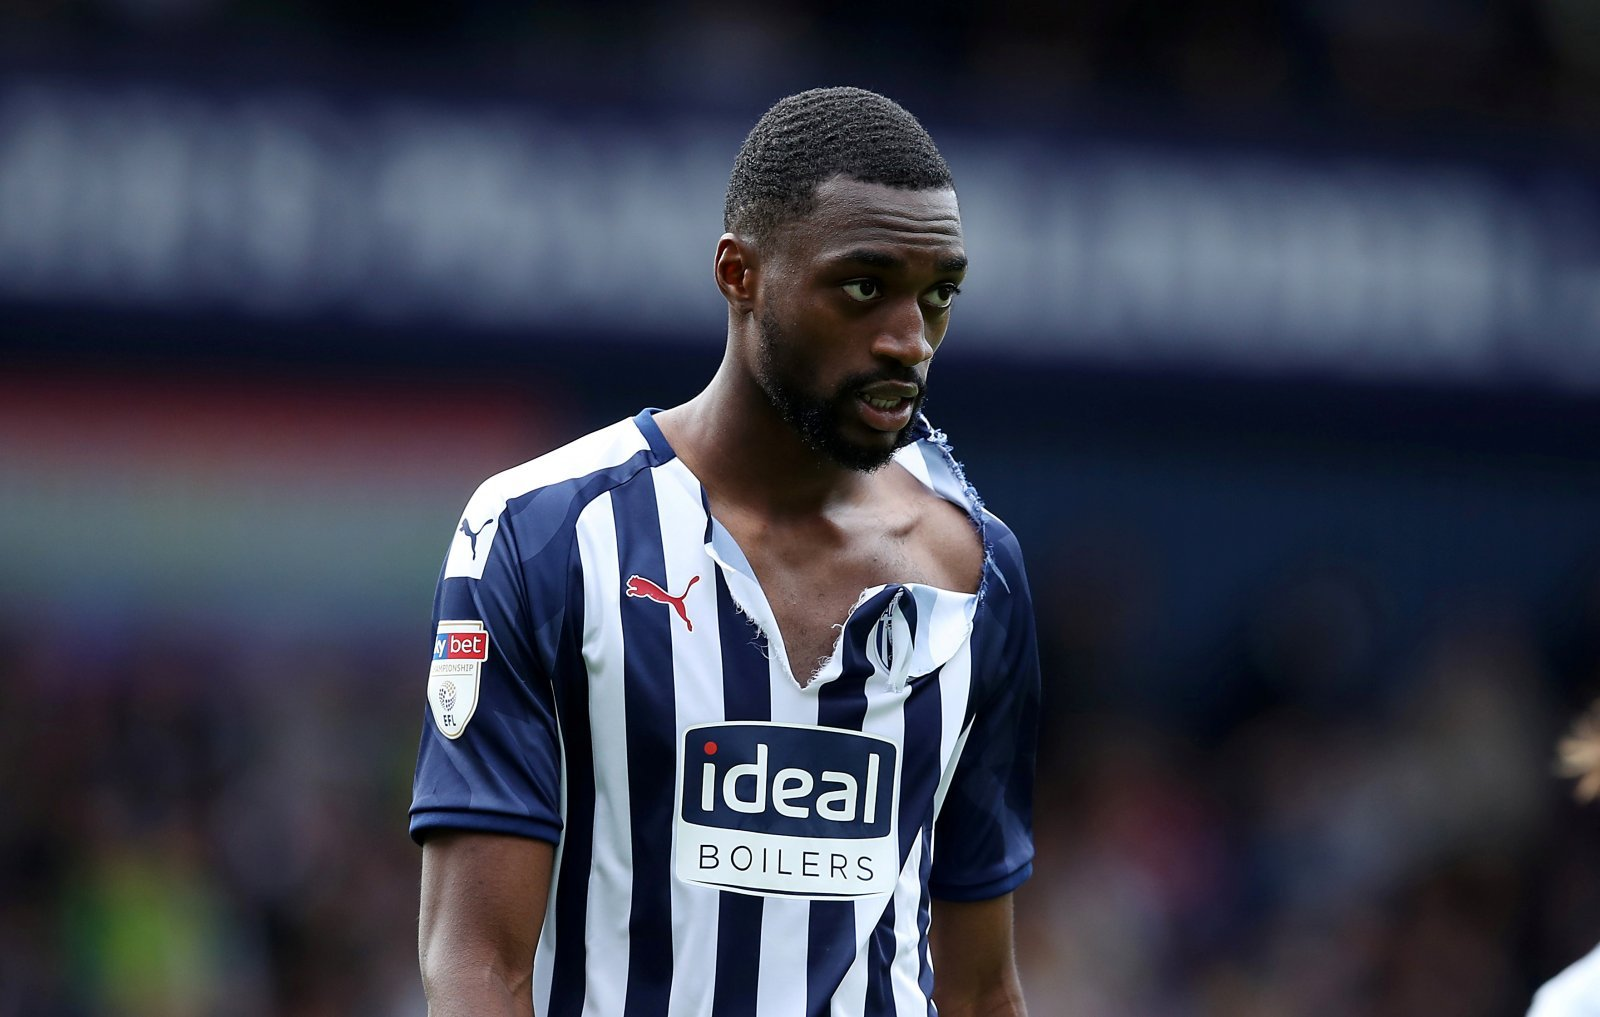 West Bromwich Albion: Fans praise impact of Semi Ajayi after Twitter post